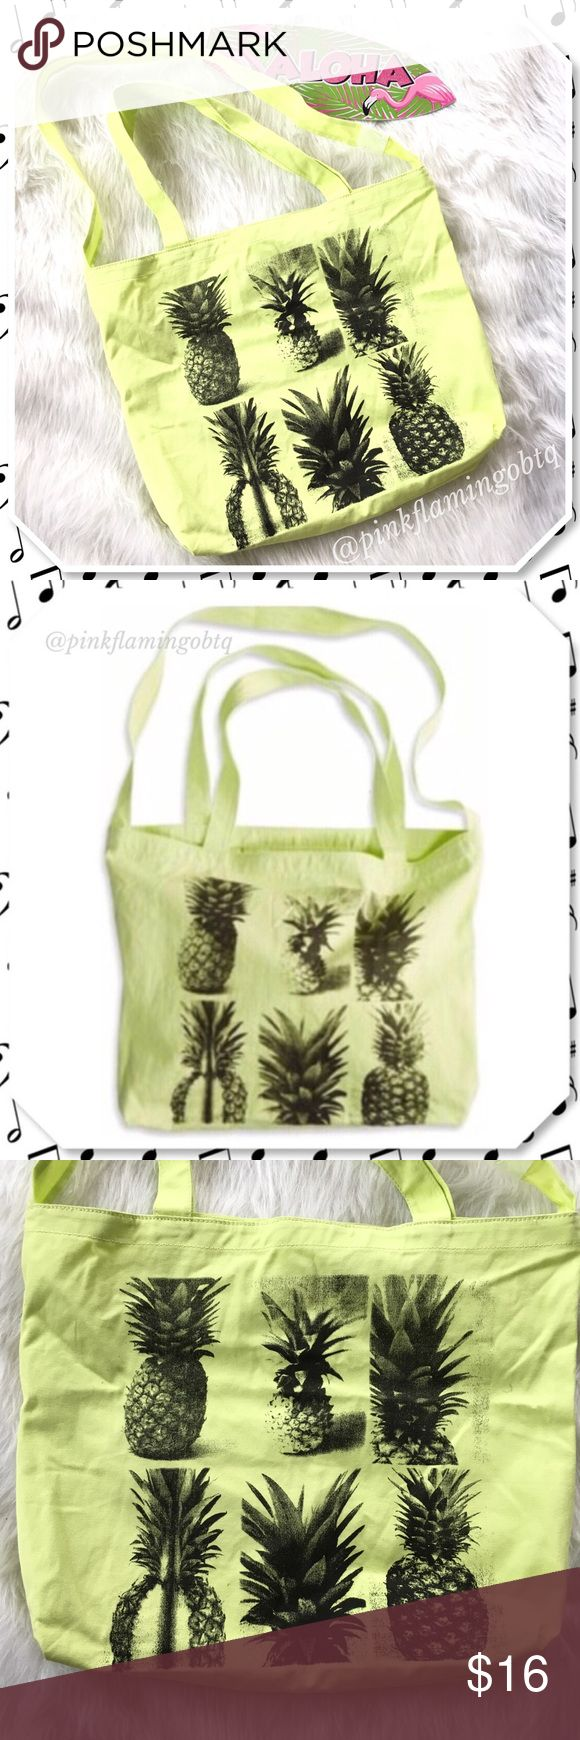 NWT 🍍Pineapple Canvas Tote Bag🍍 Yellow canvas tote bag with pineapple print. Has 3 handles so you can use it two different ways. Long strap, 2 shorter straps and an inner pocket for smaller items. Tag fell off but the plastic tag holder is still attached. American Eagle Outfitters Bags Totes